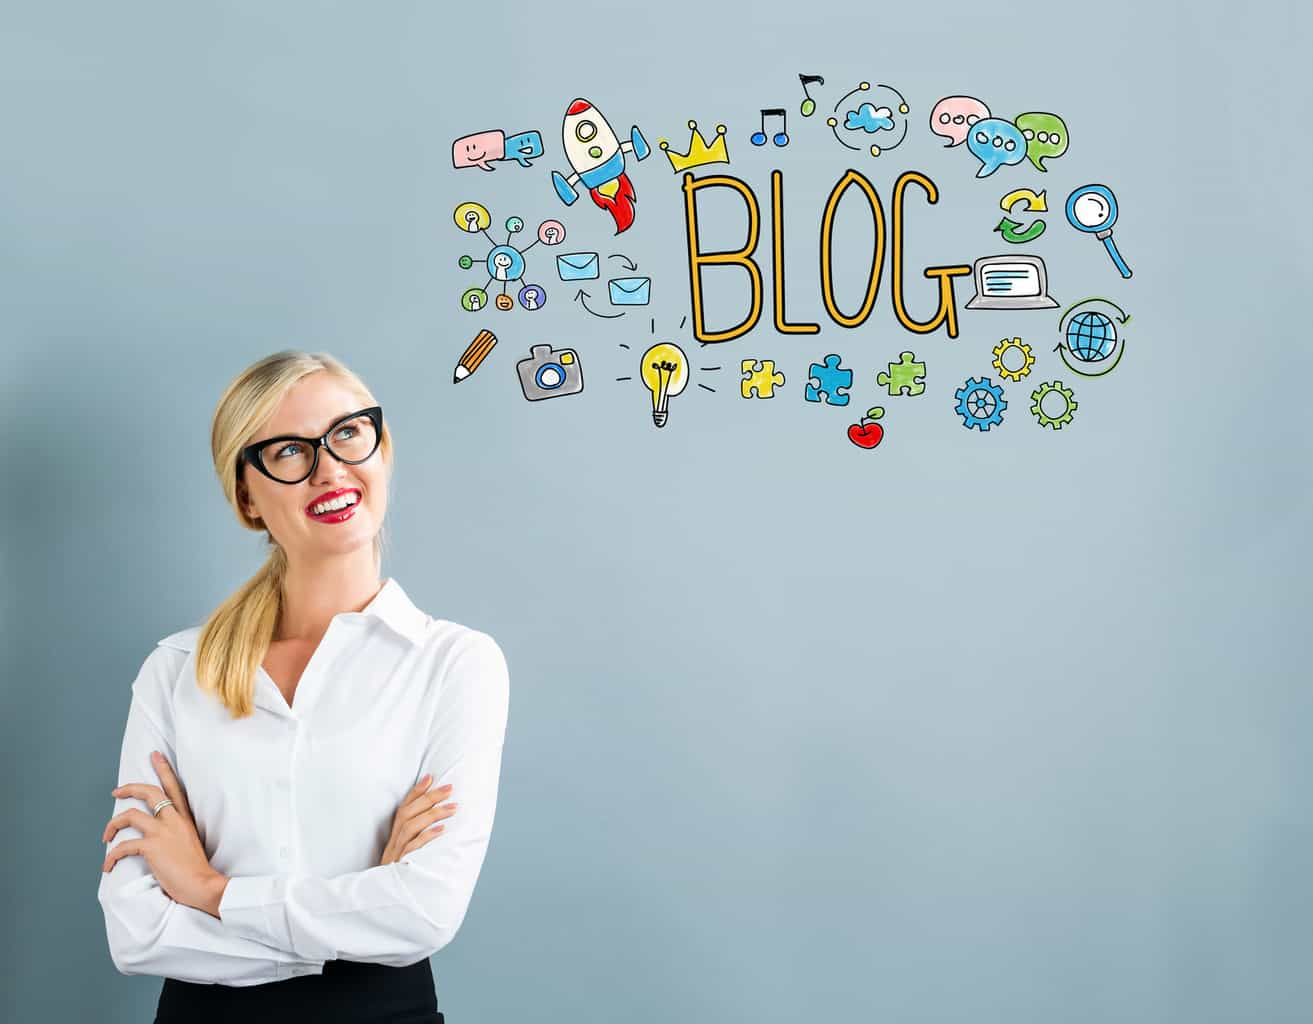 Blog text with business woman